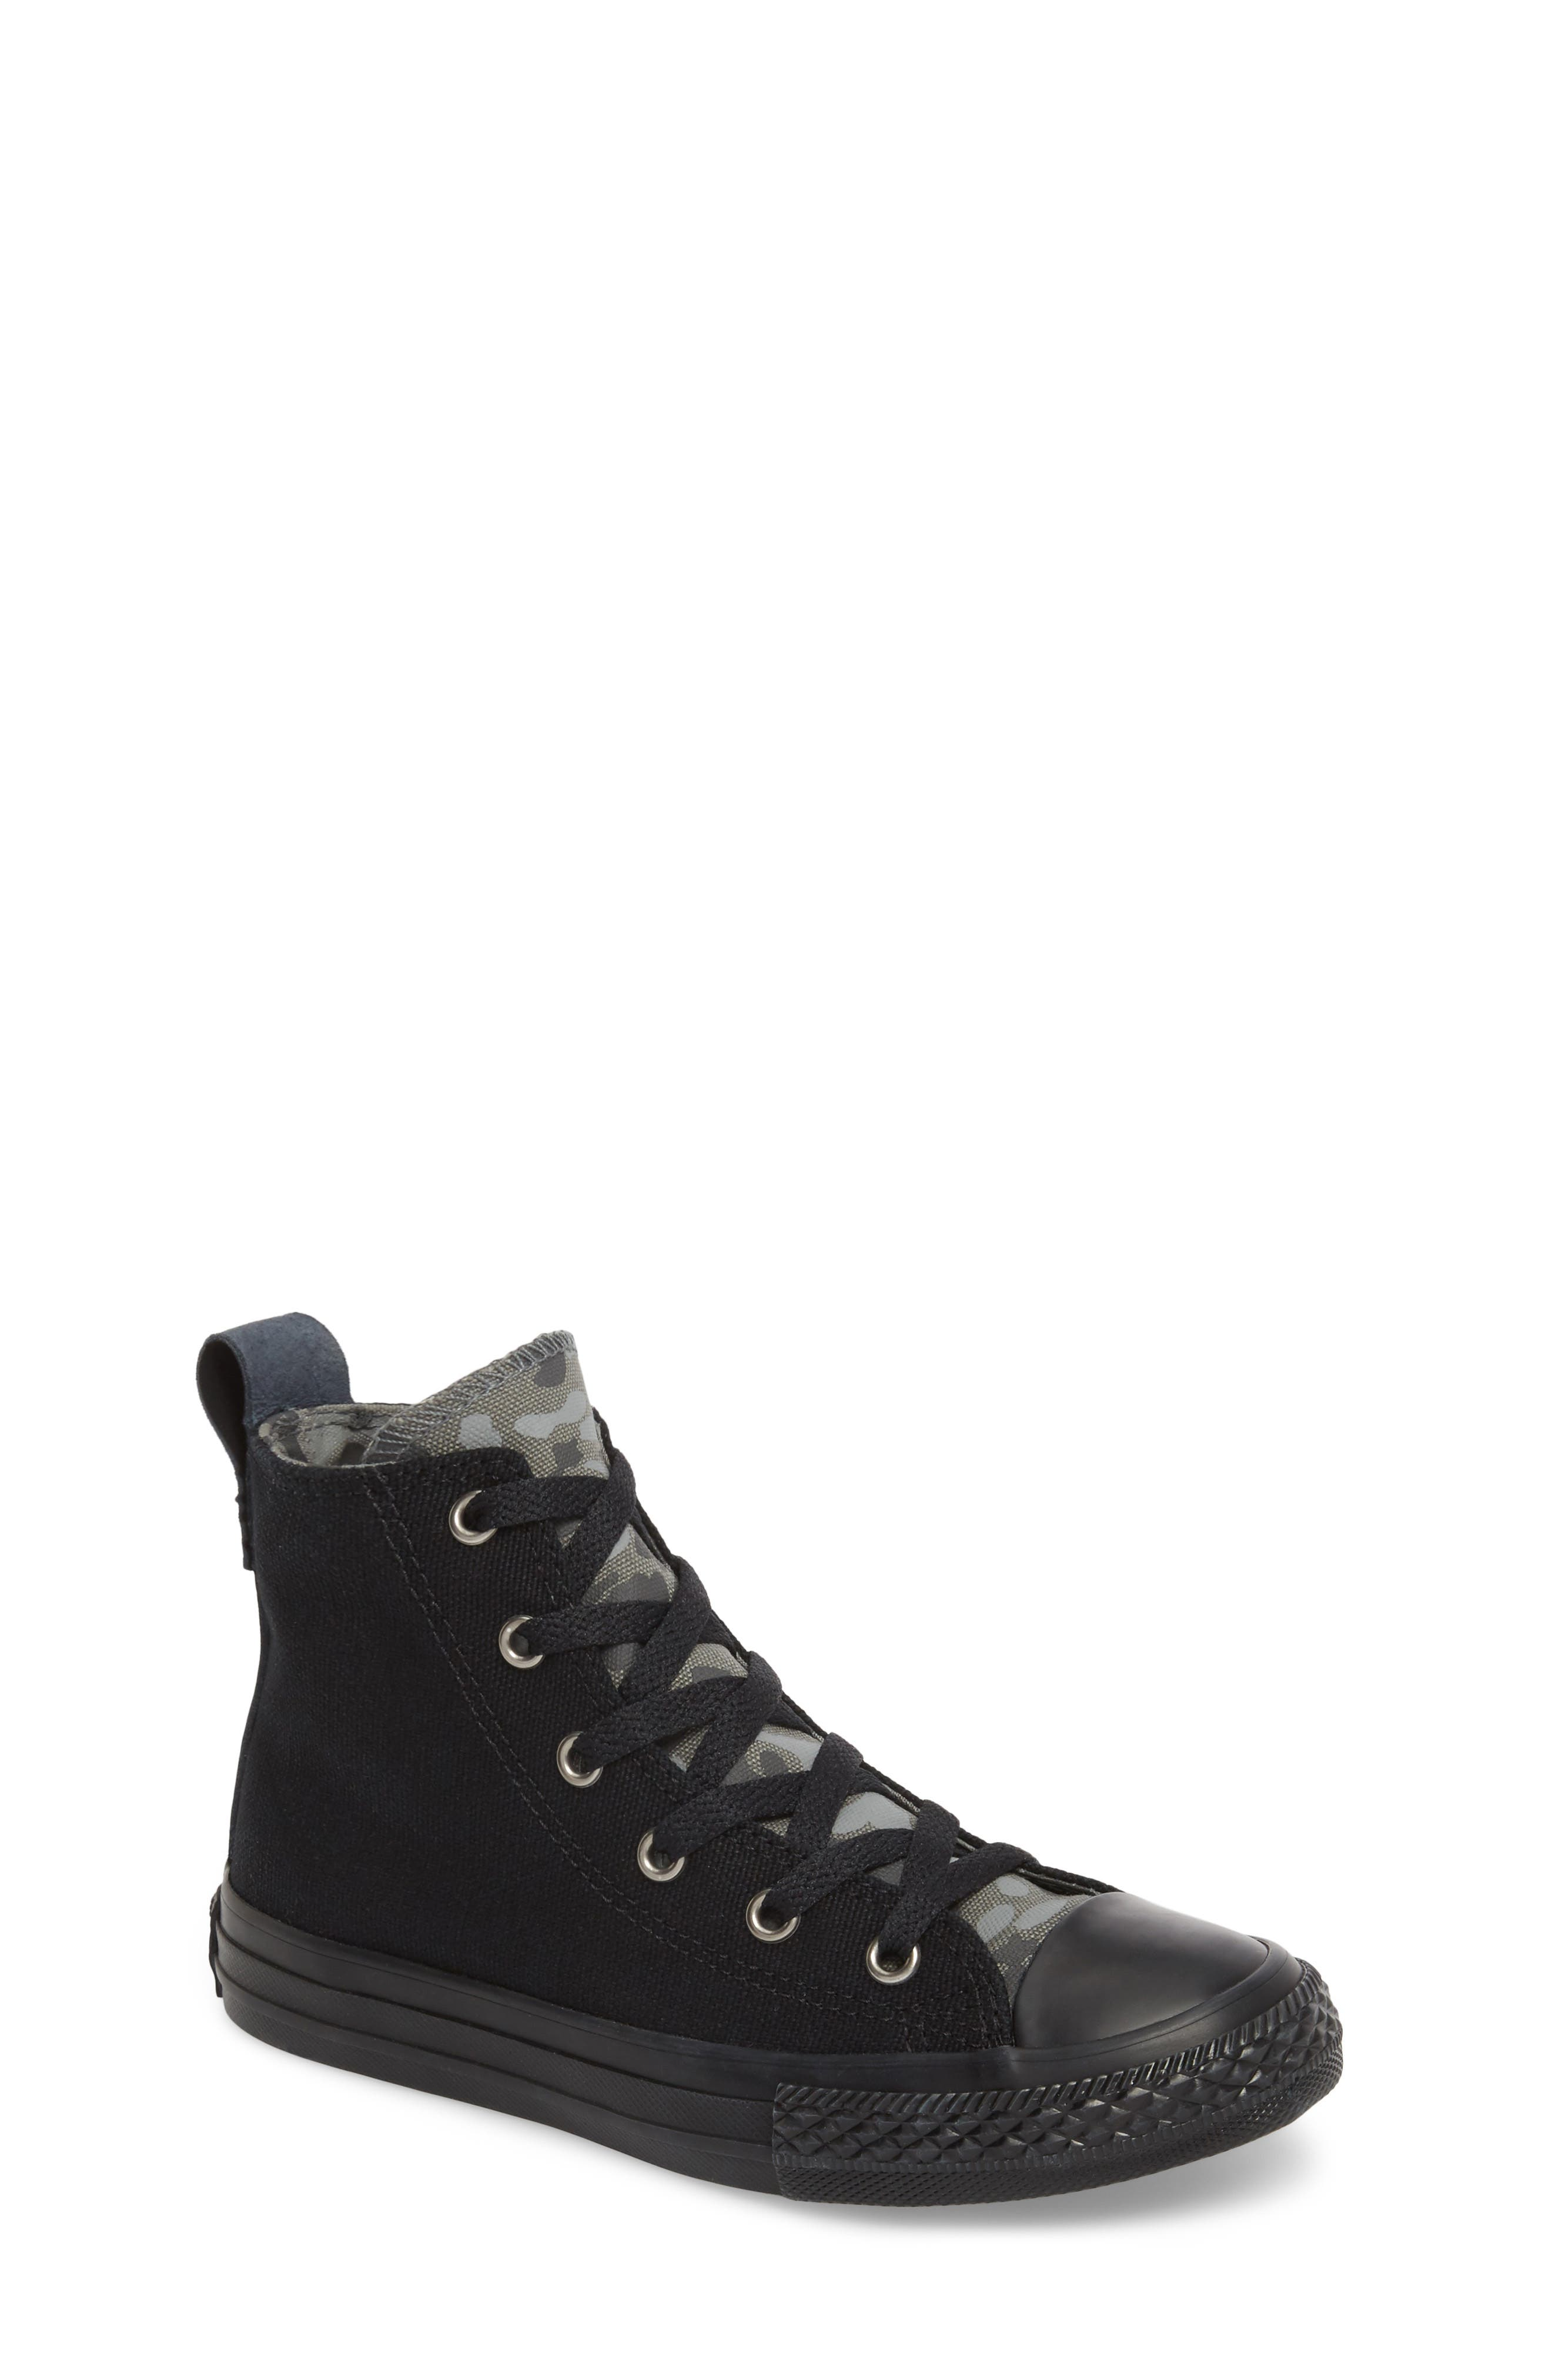 Chuck Taylor<sup>®</sup> All Star<sup>®</sup> Camo High Top Sneaker,                         Main,                         color, Black